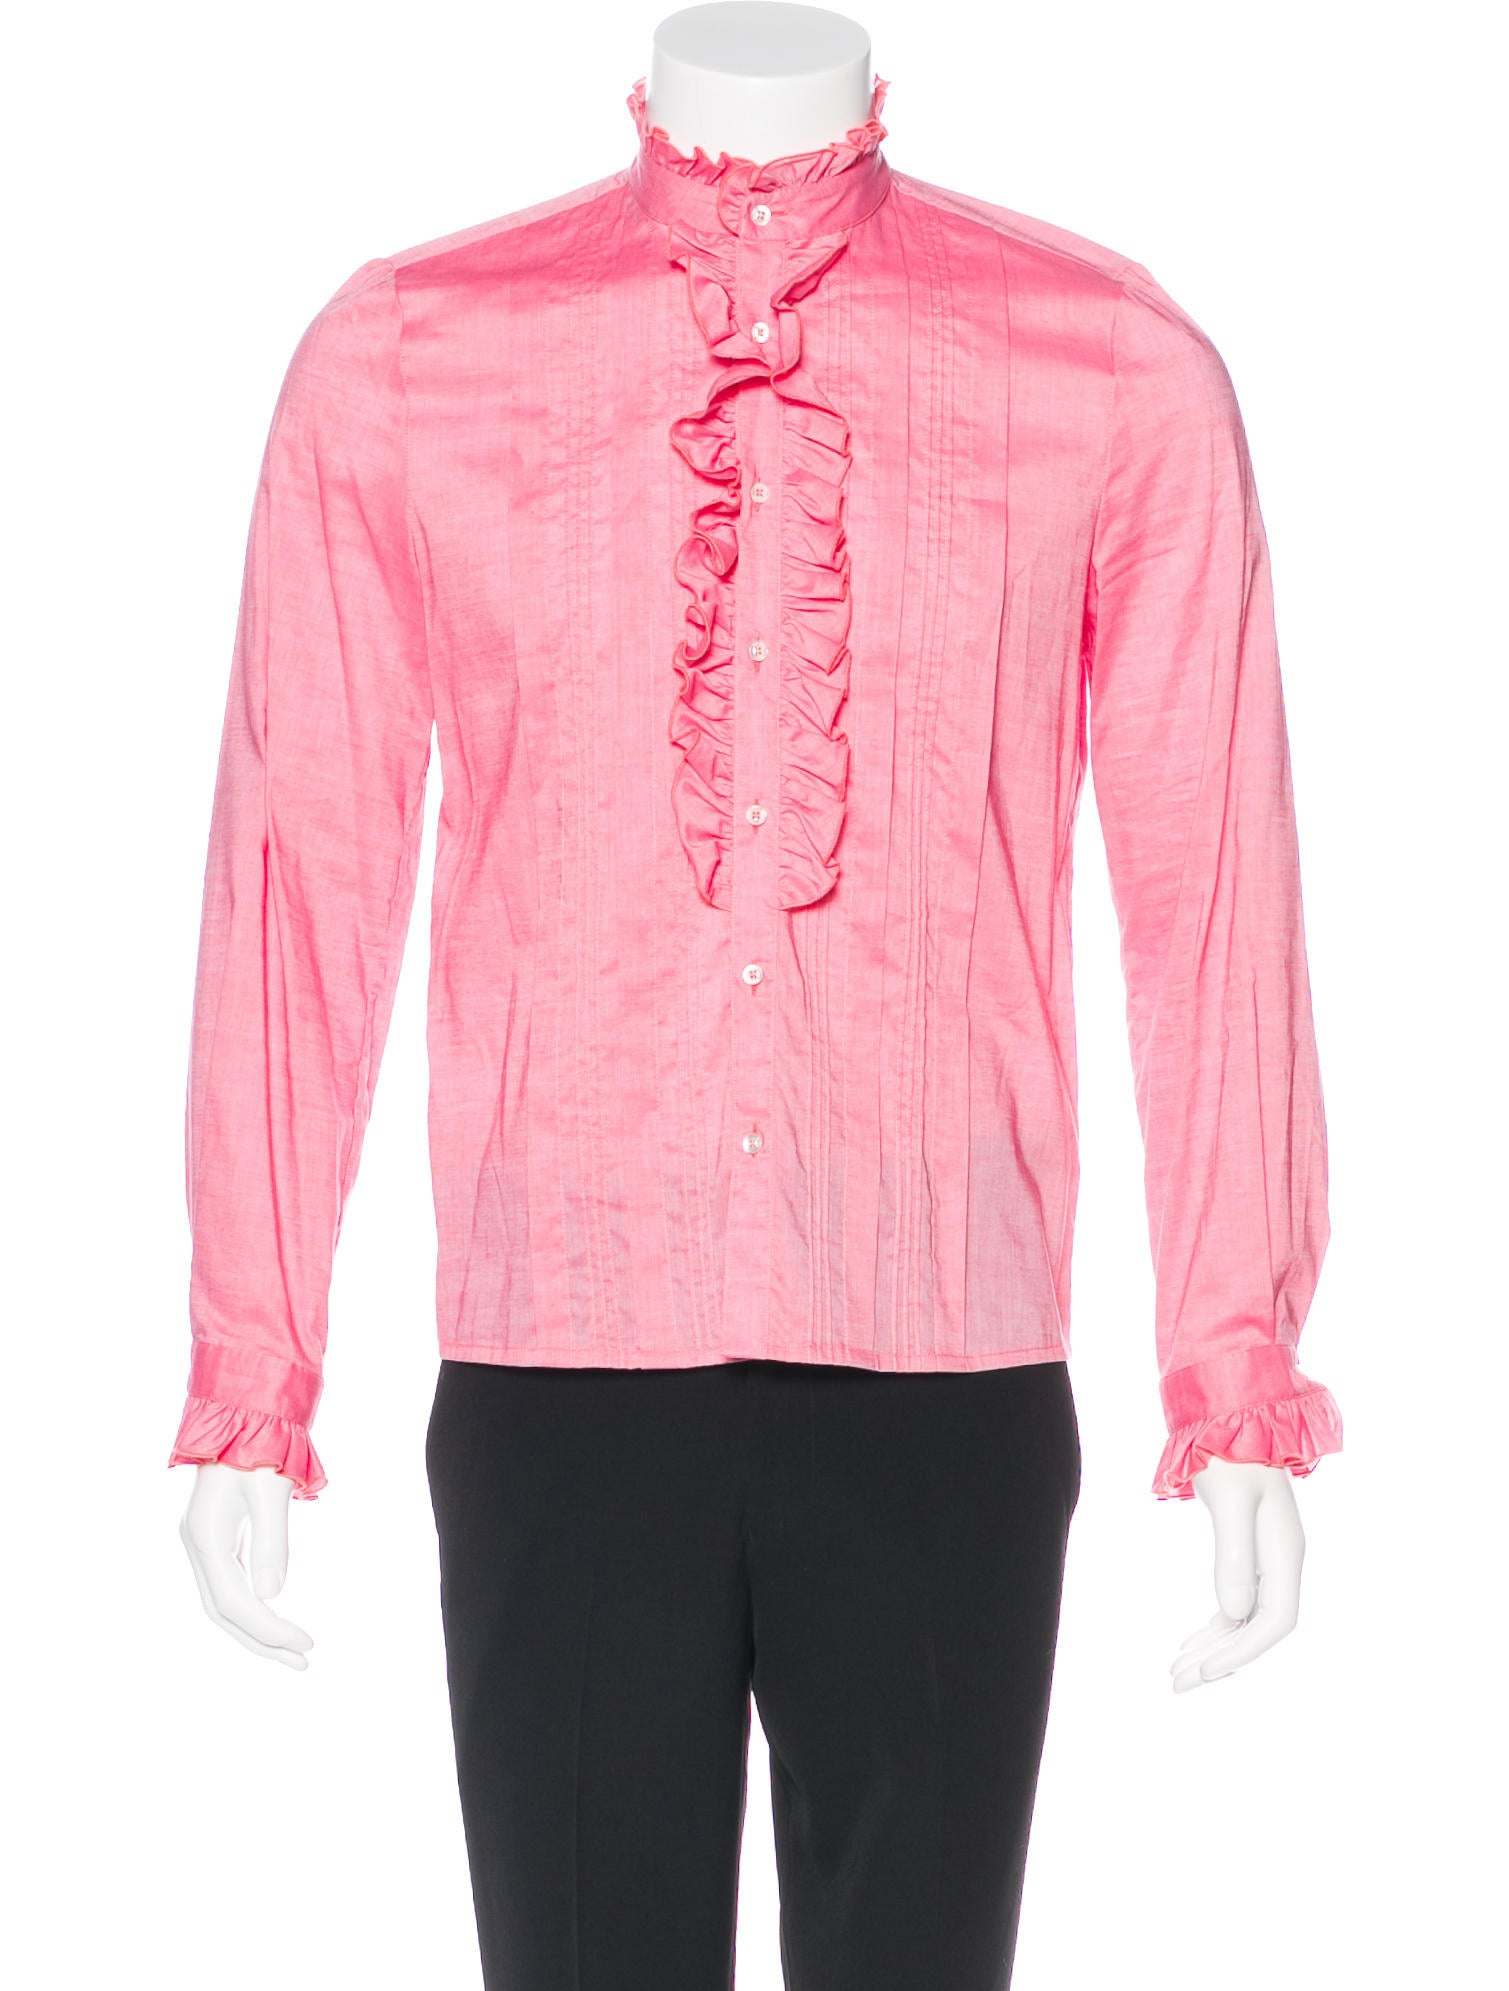 Gucci Ruffled Button Up Shirt Clothing Guc180564 The